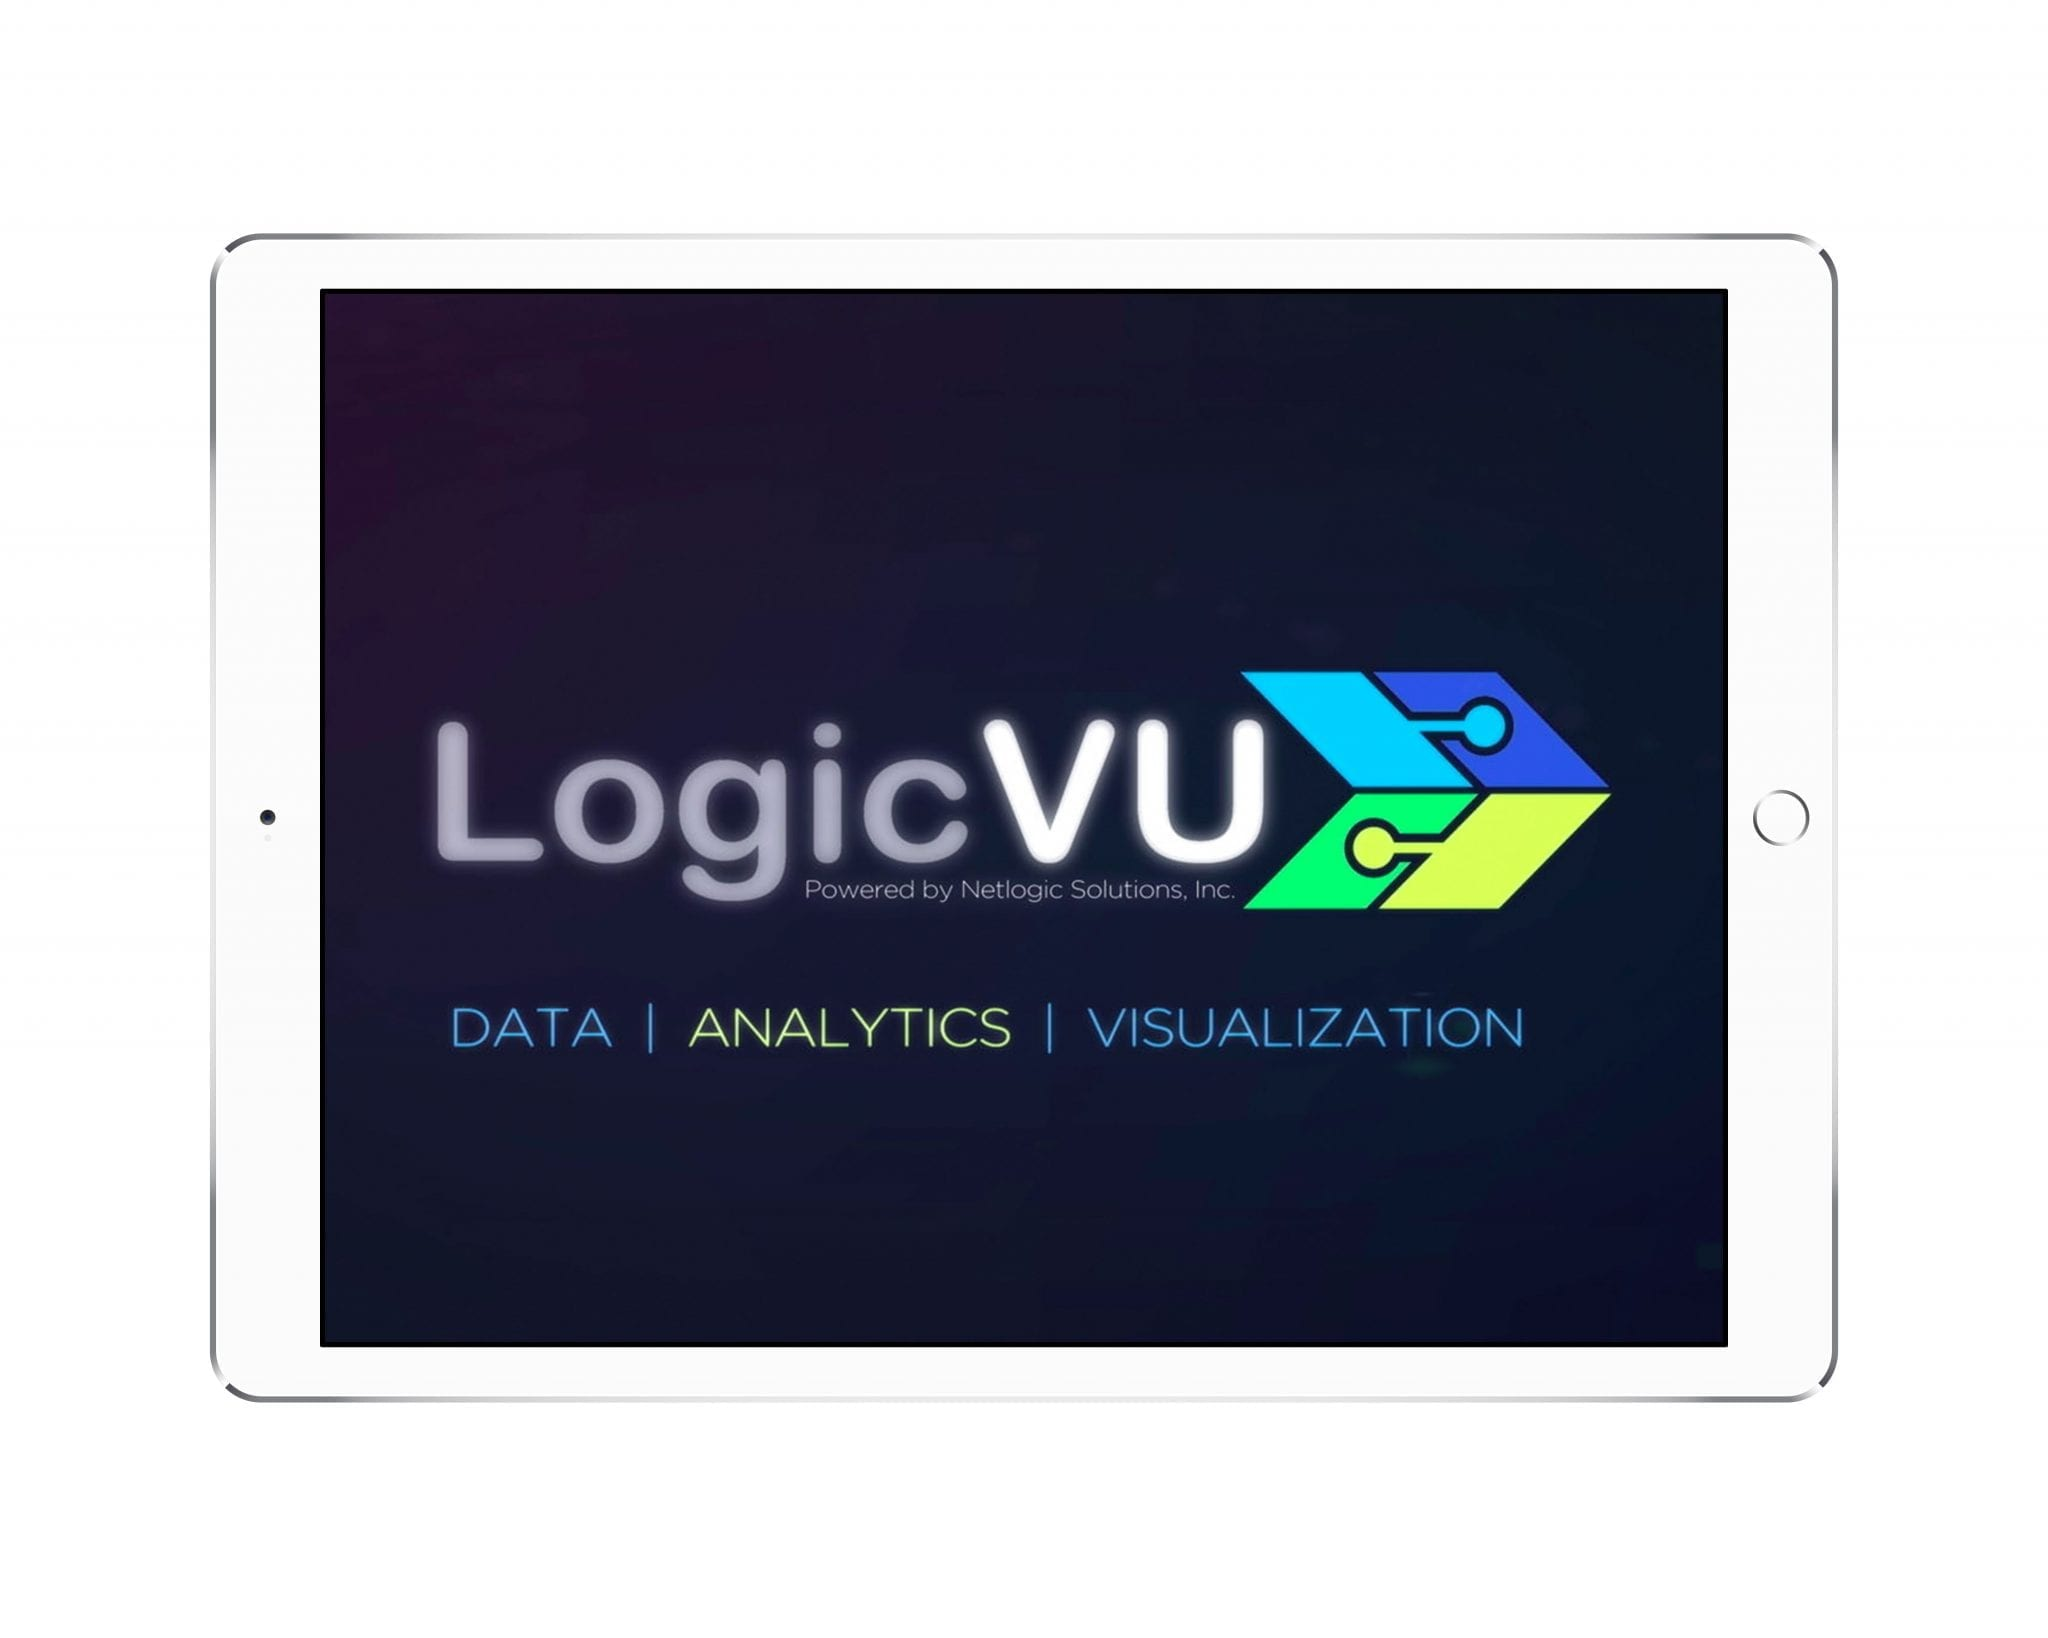 LogicVu BI Product Launch Video